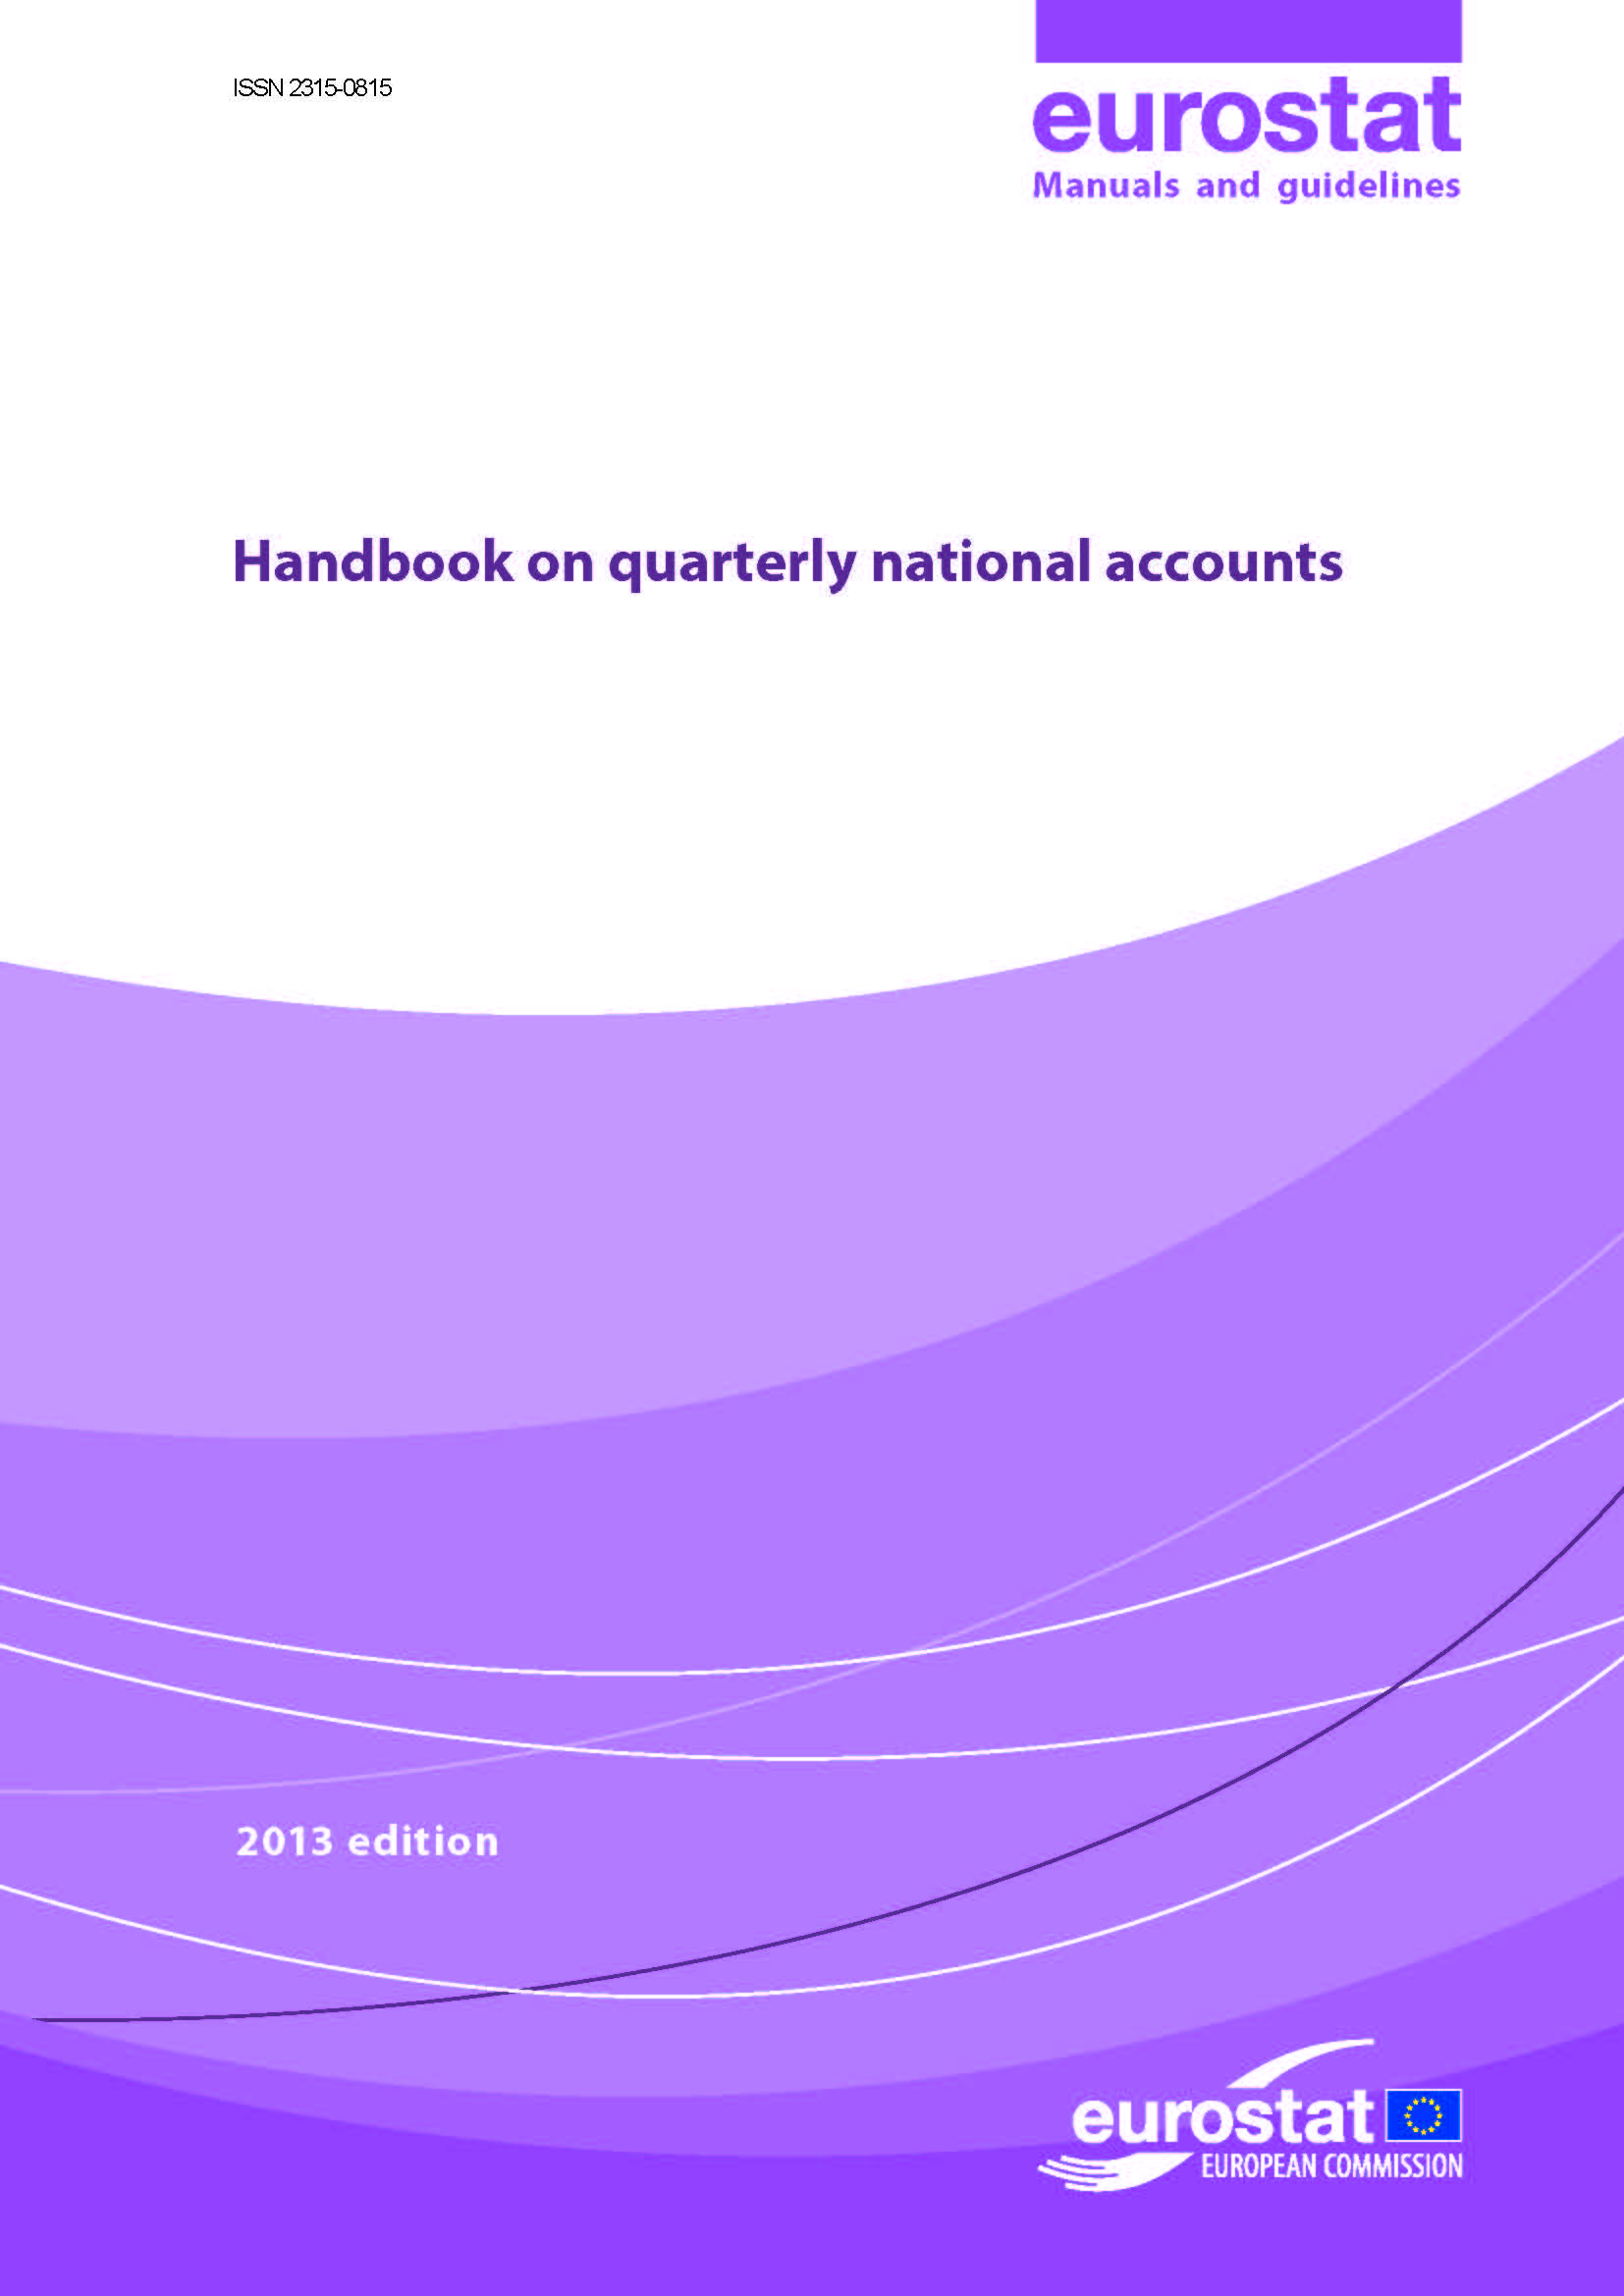 Handbook on quarterly national accounts - 2013 edition